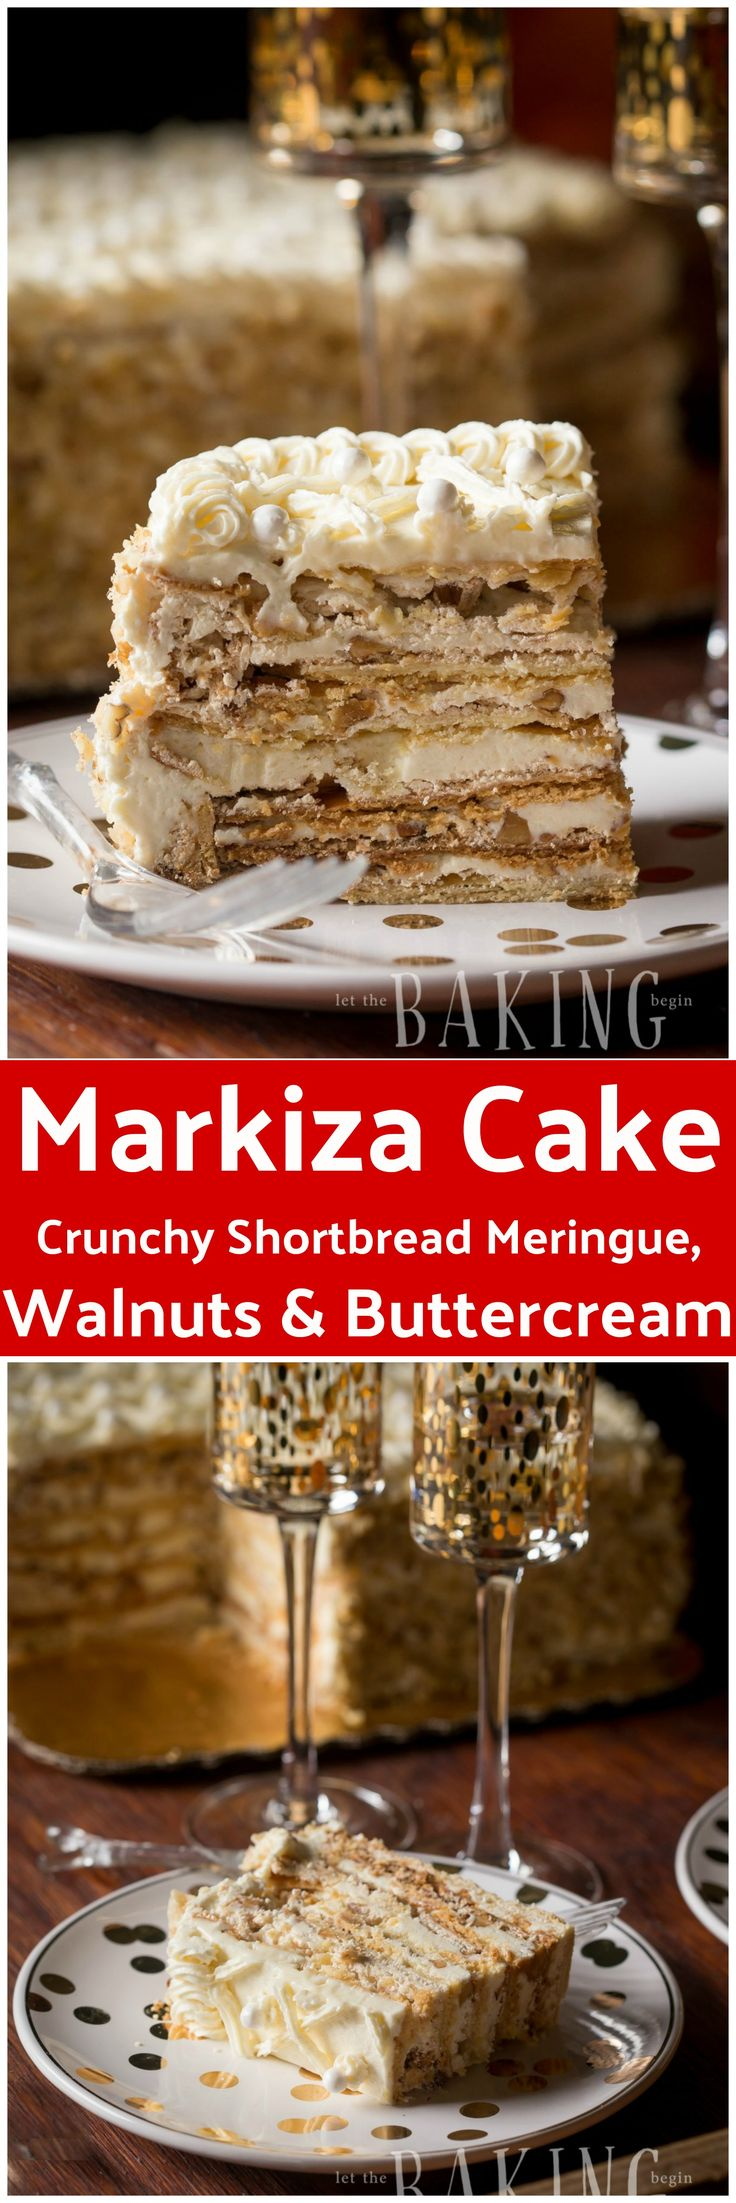 Markiza Cake Recipe (Marquise Cake) - Shortbread cake layers topped with crunchy meringue and walnuts, then sandwiched with Russian Buttercream | by Let the Baking Begin!